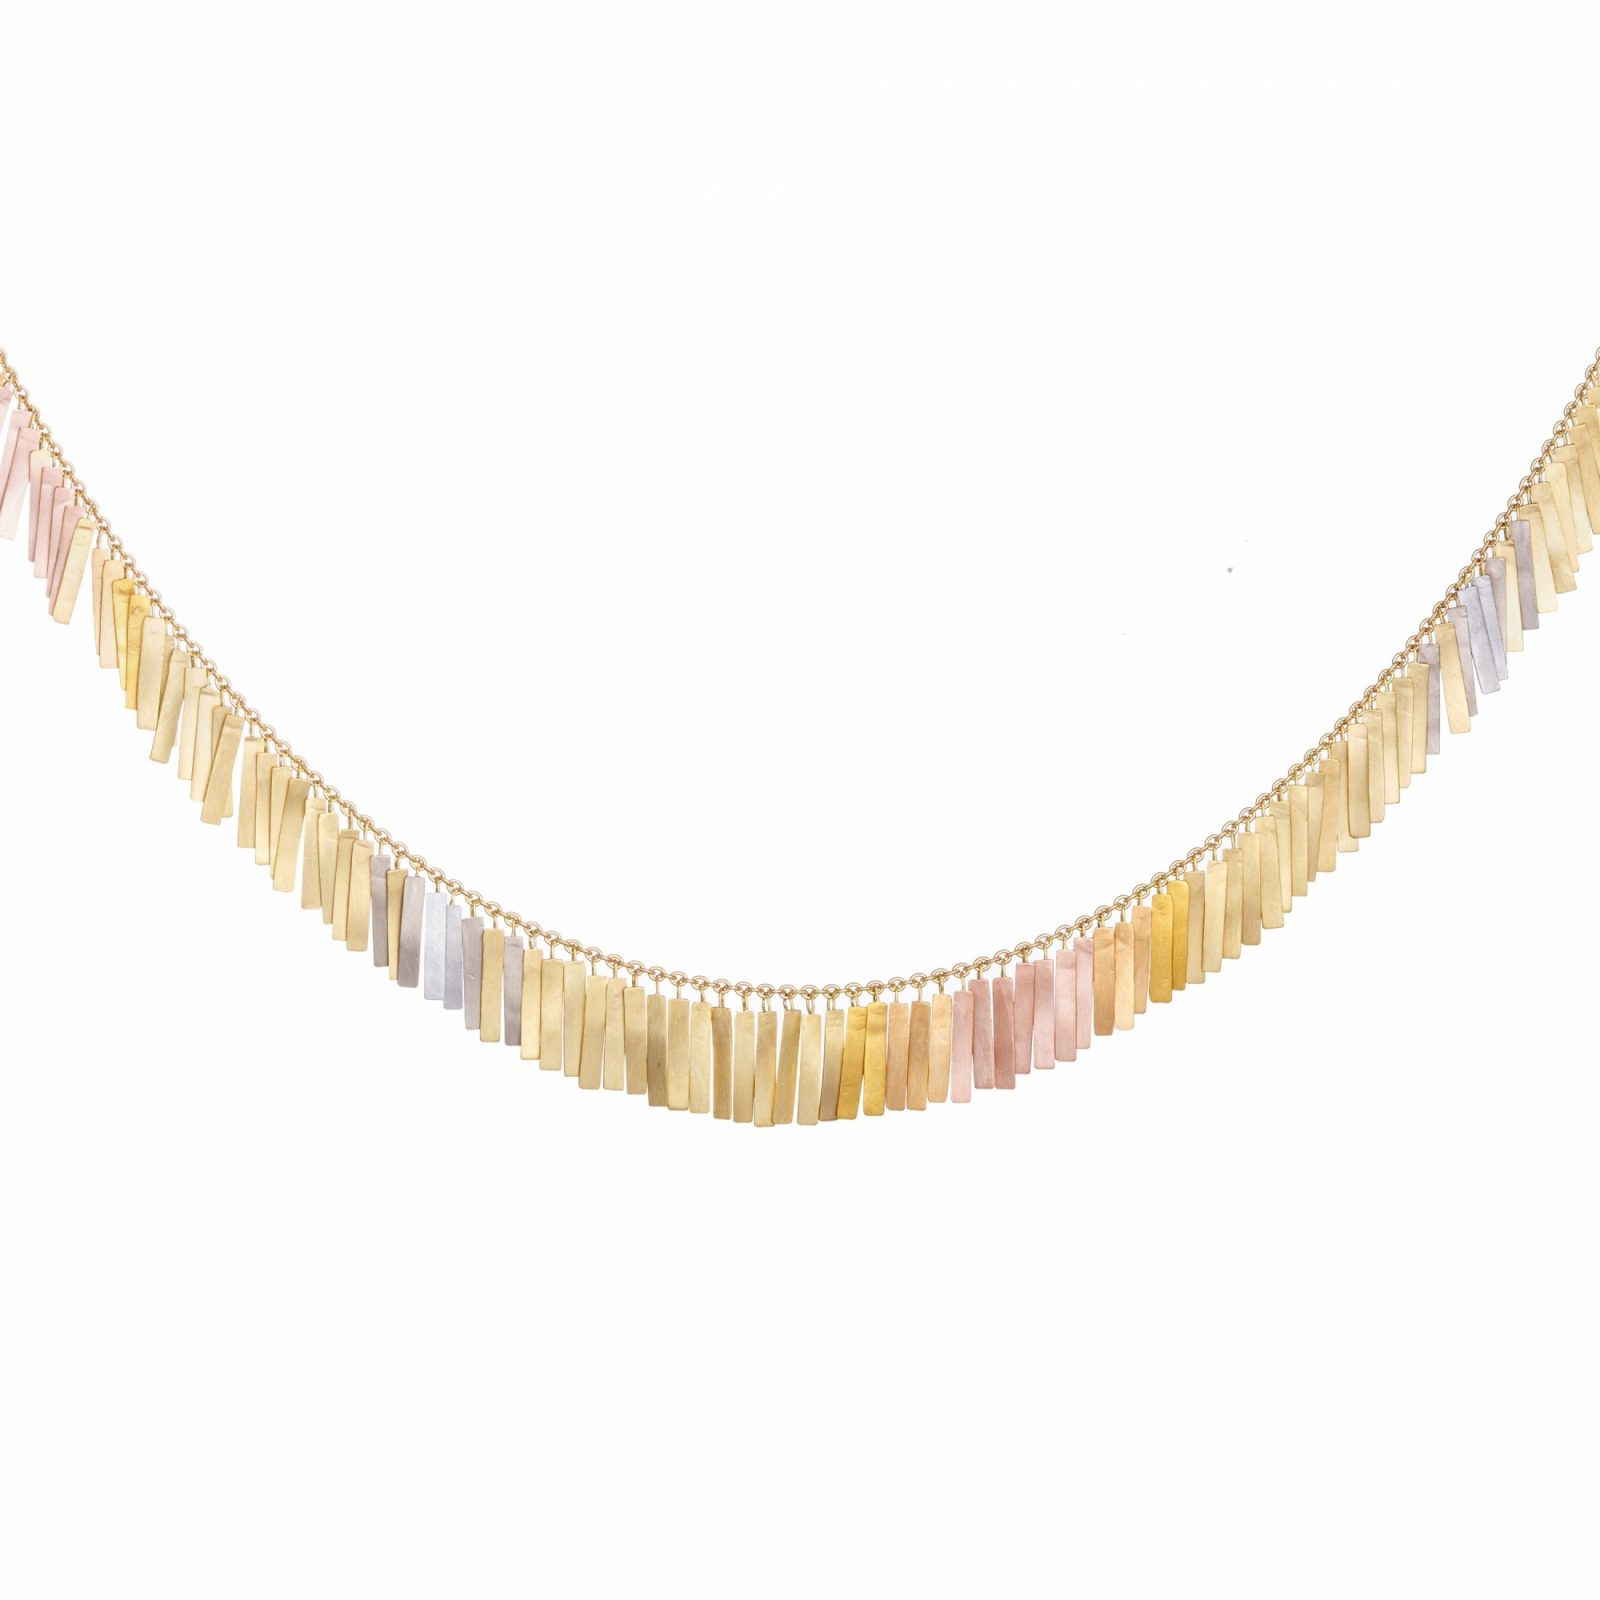 Sia Taylor KN28 RAIN Rainbow Gold Sunset Fringe Full Necklace WB